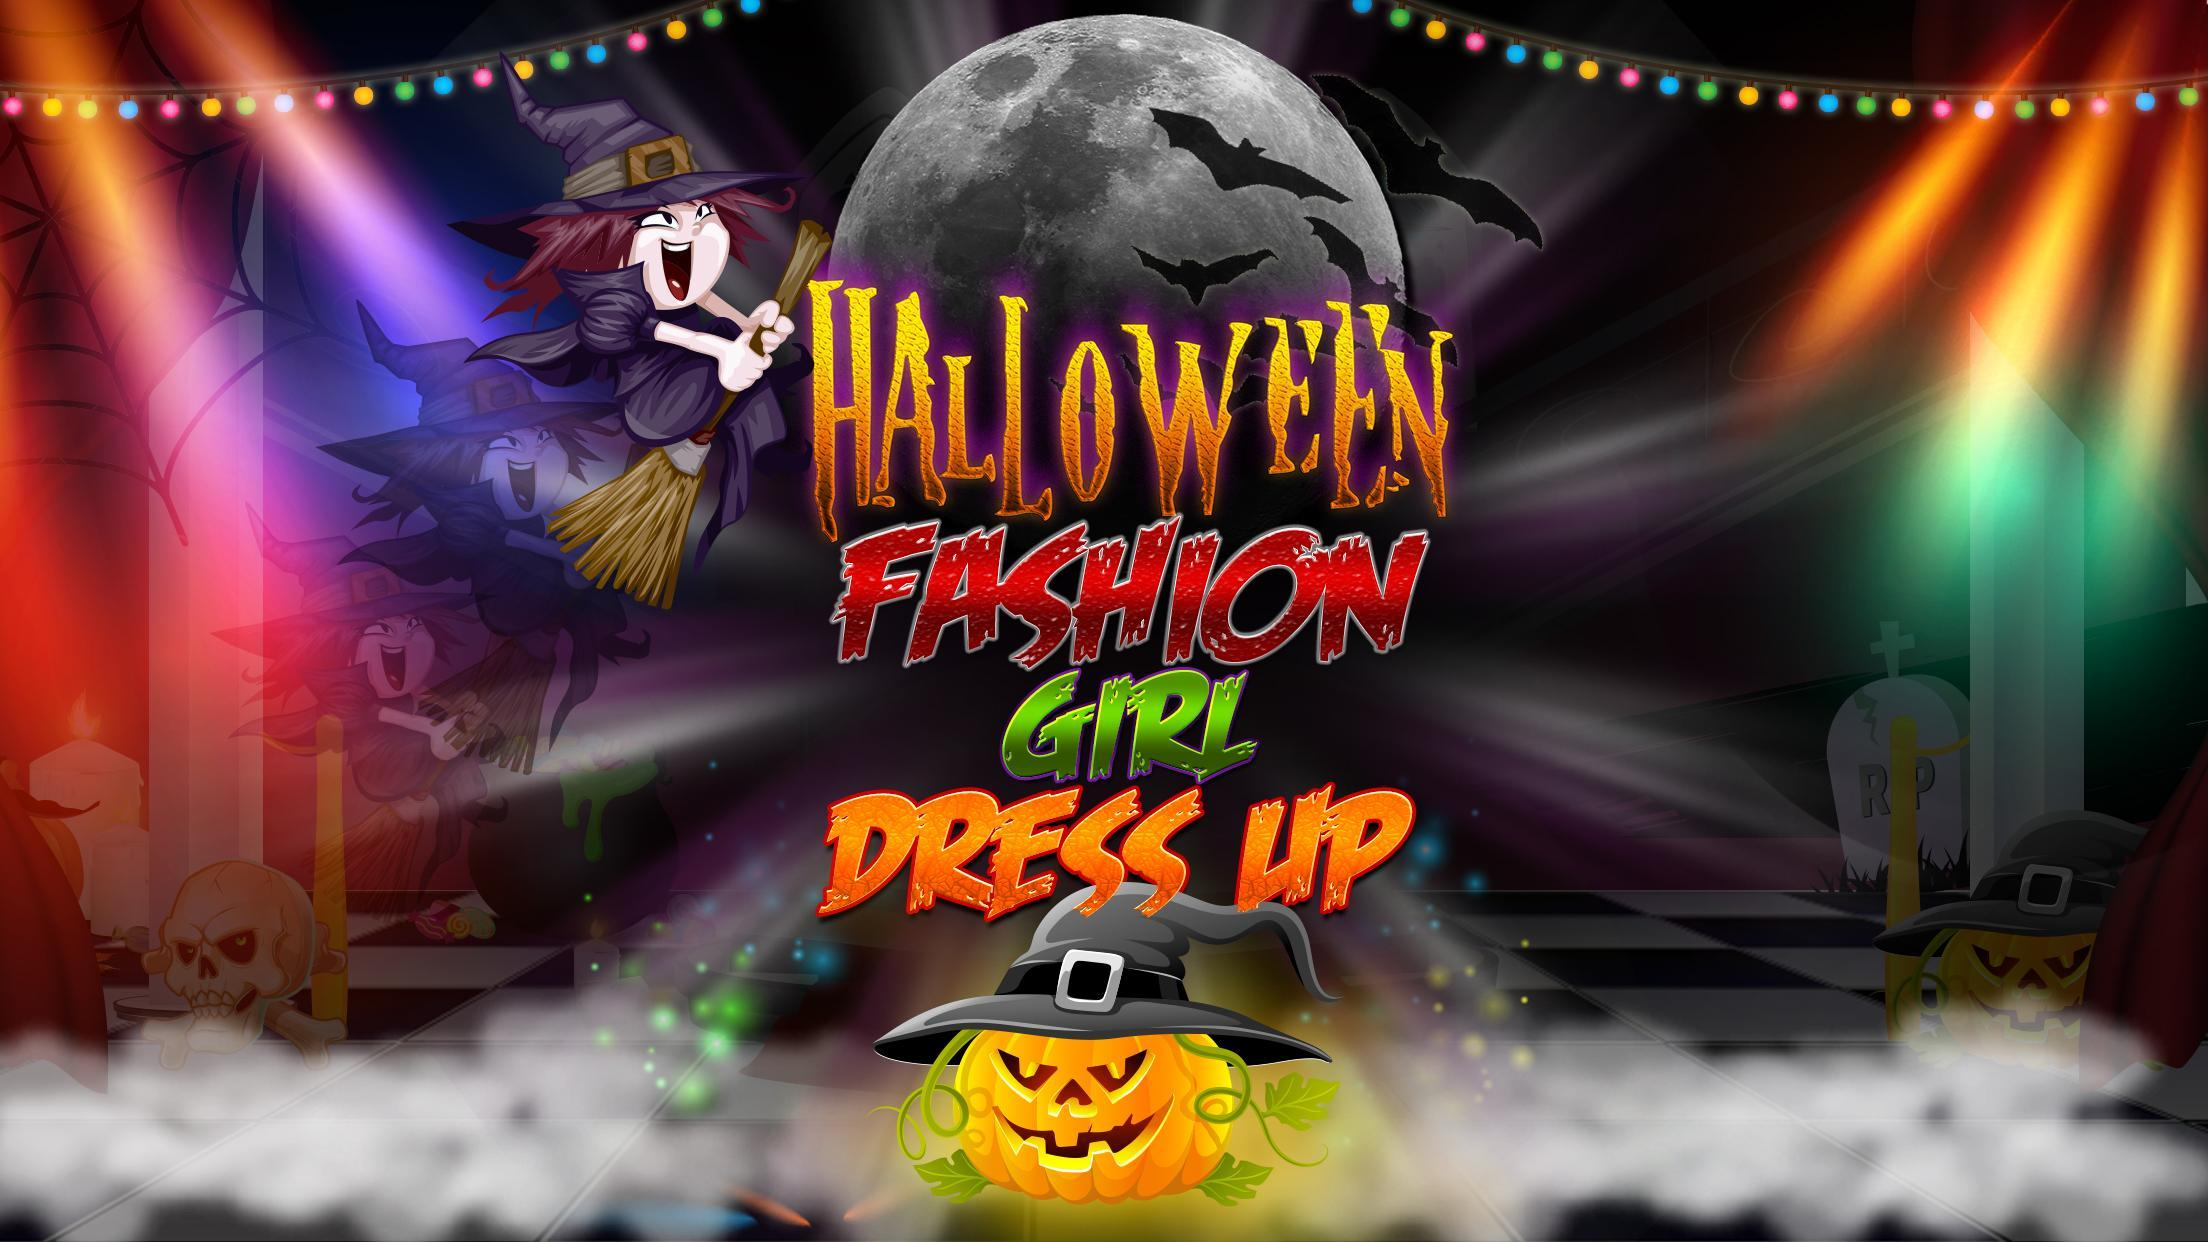 Halloween Fashion Girl Dress Up Halloween Games For Android Apk Download